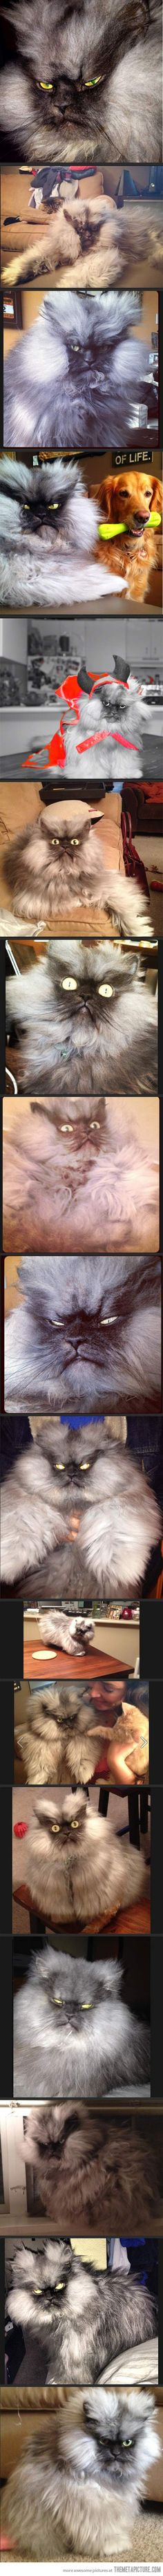 The most glorious angry cat that has ever existed…he's probably so grumpy because he has so much hair...